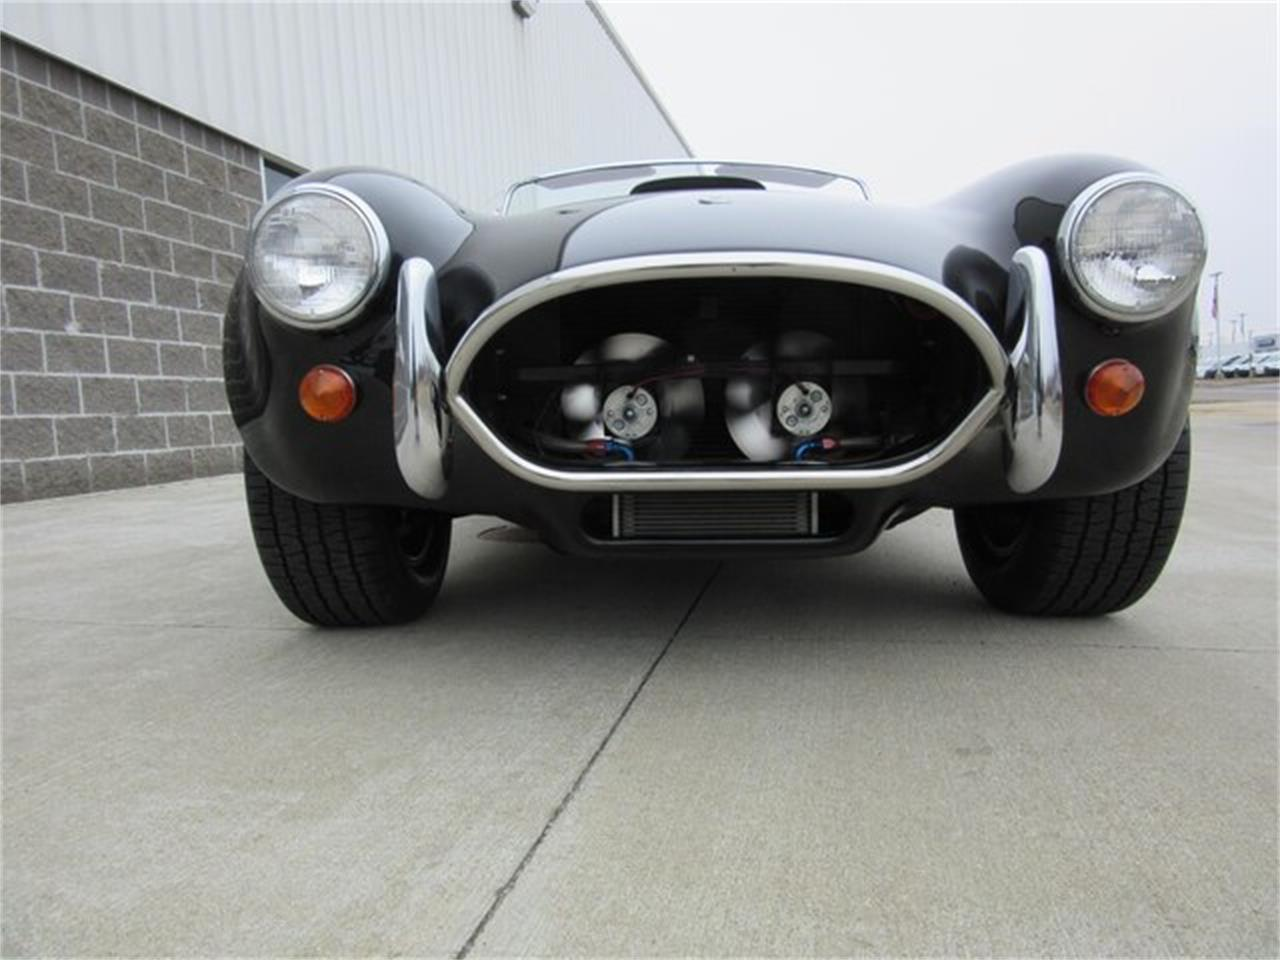 1985 Autokraft Cobra for sale in Greenwood, IN – photo 29